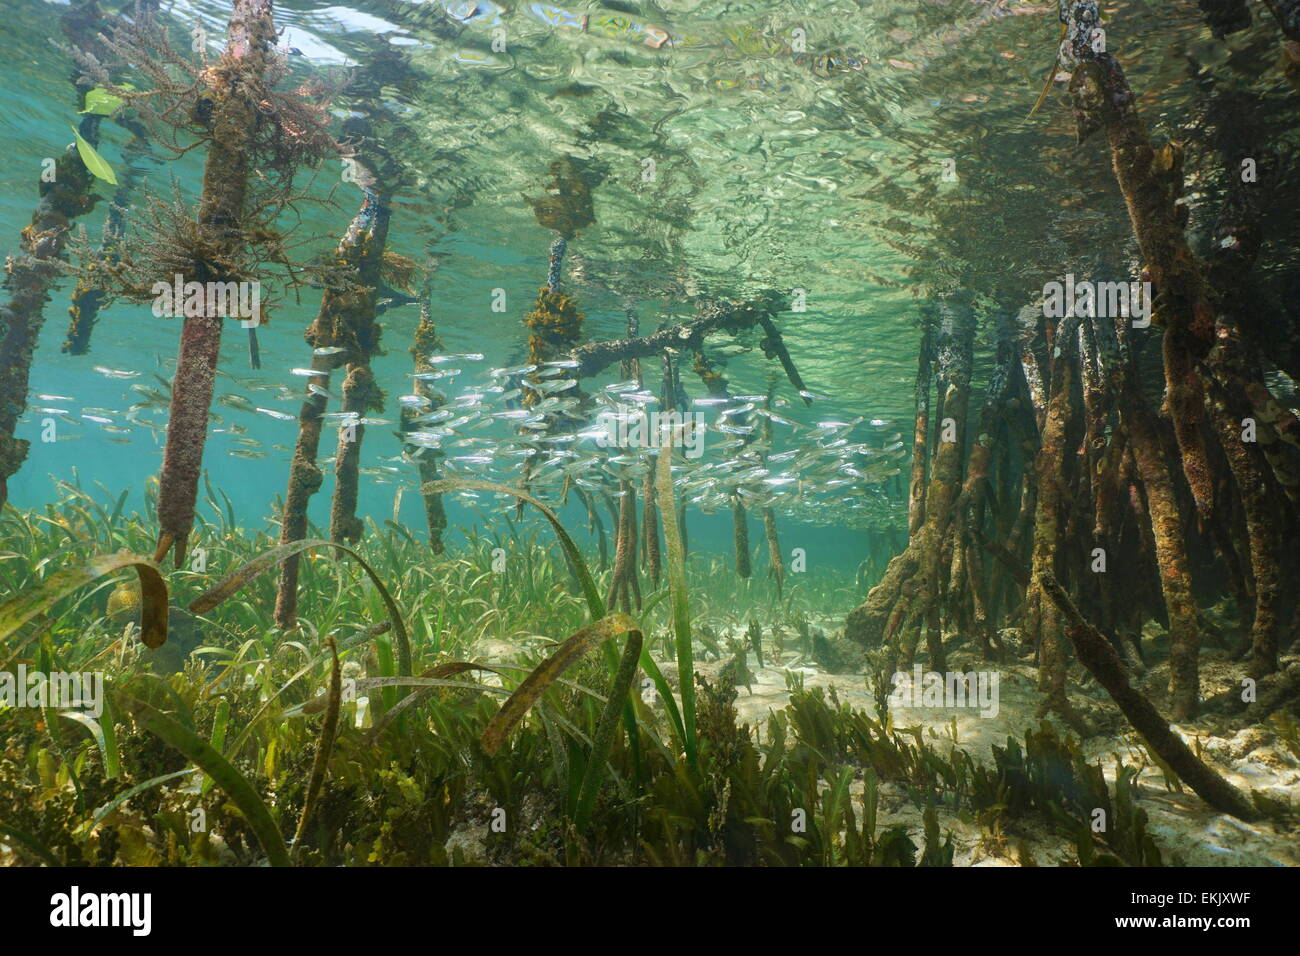 Mangrove ecosystem underwater with school of juvenile fish and tree roots of Rhizophora mangle, Caribbean sea - Stock Image